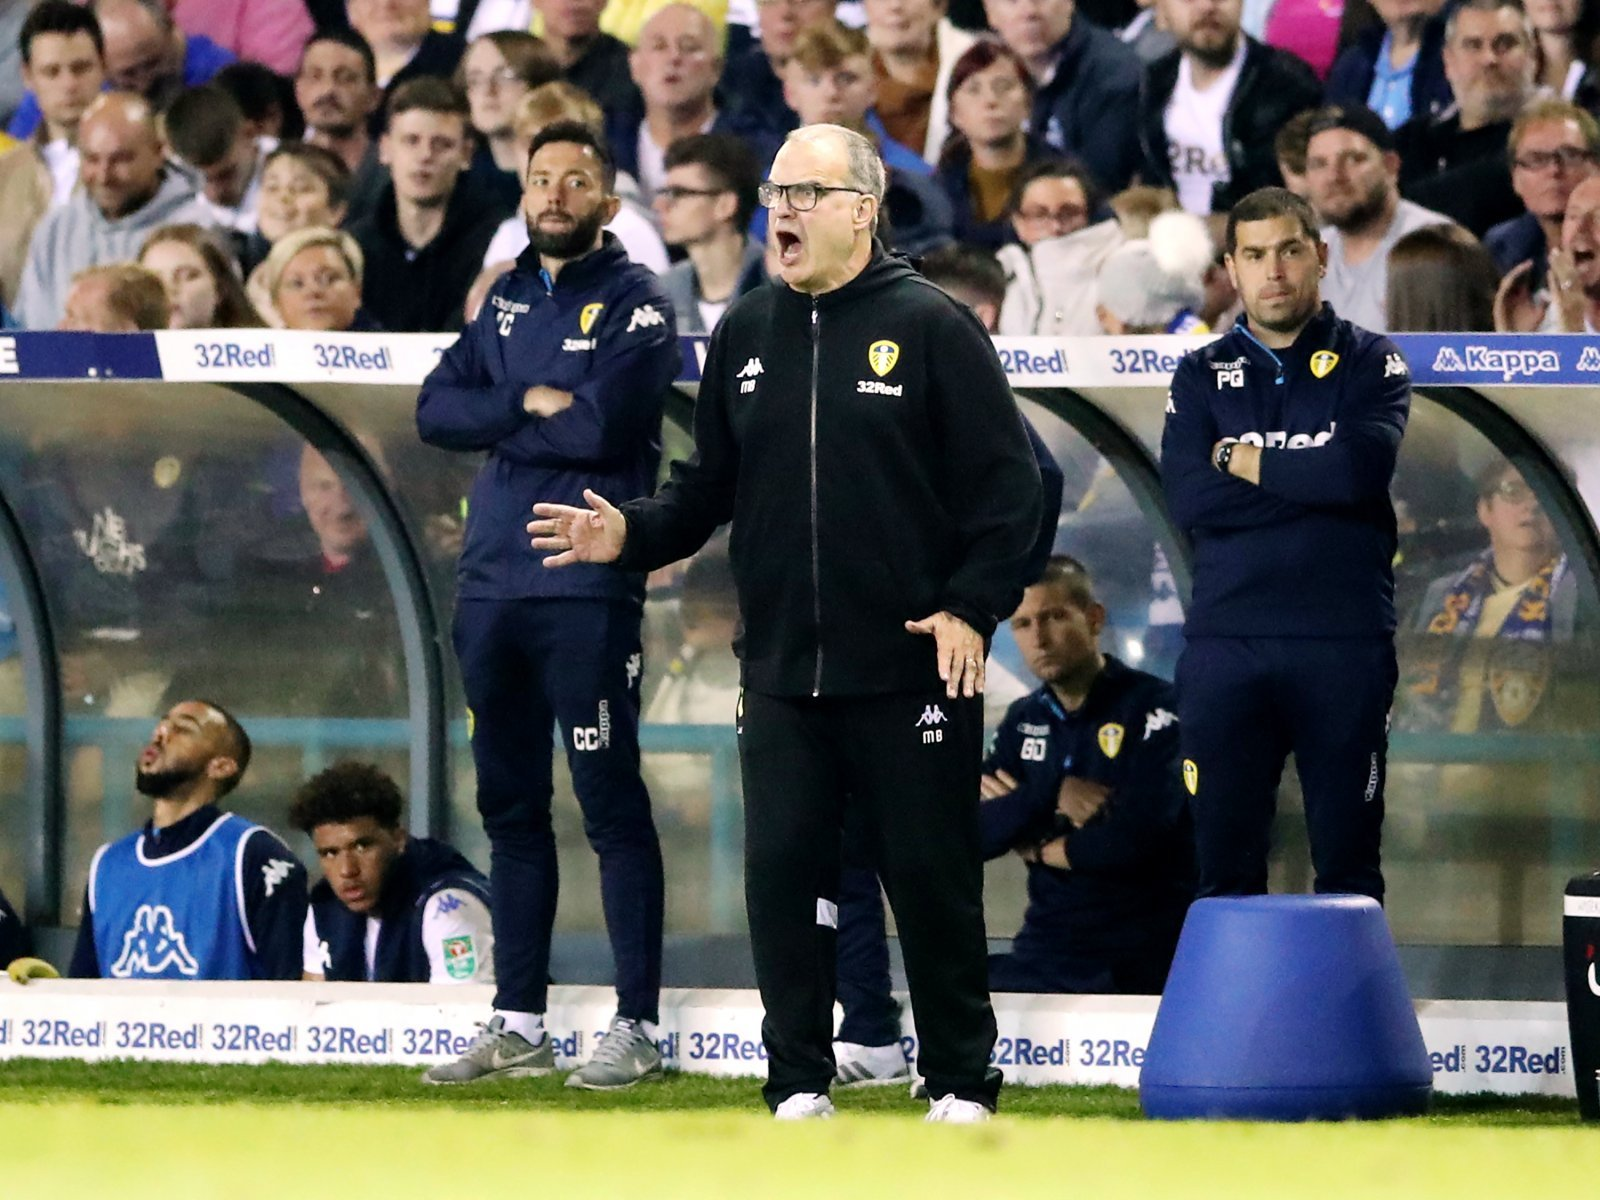 Leeds United: Marcelo Bielsa Makes Claim About Leeds United's Supporters